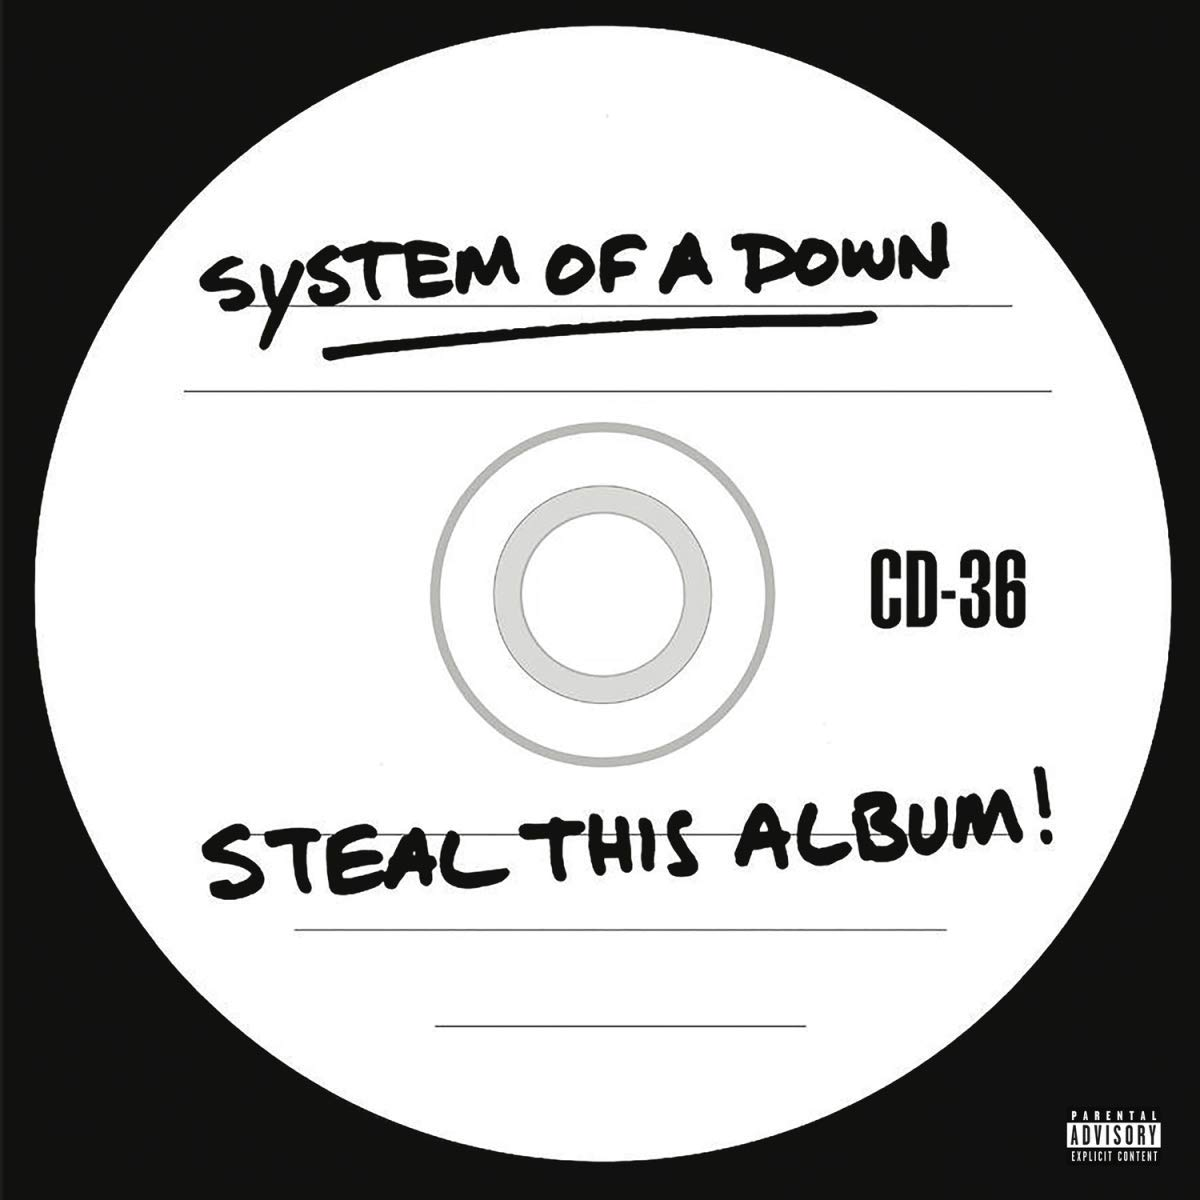 Steal This Album! - Vinyl thumbnail